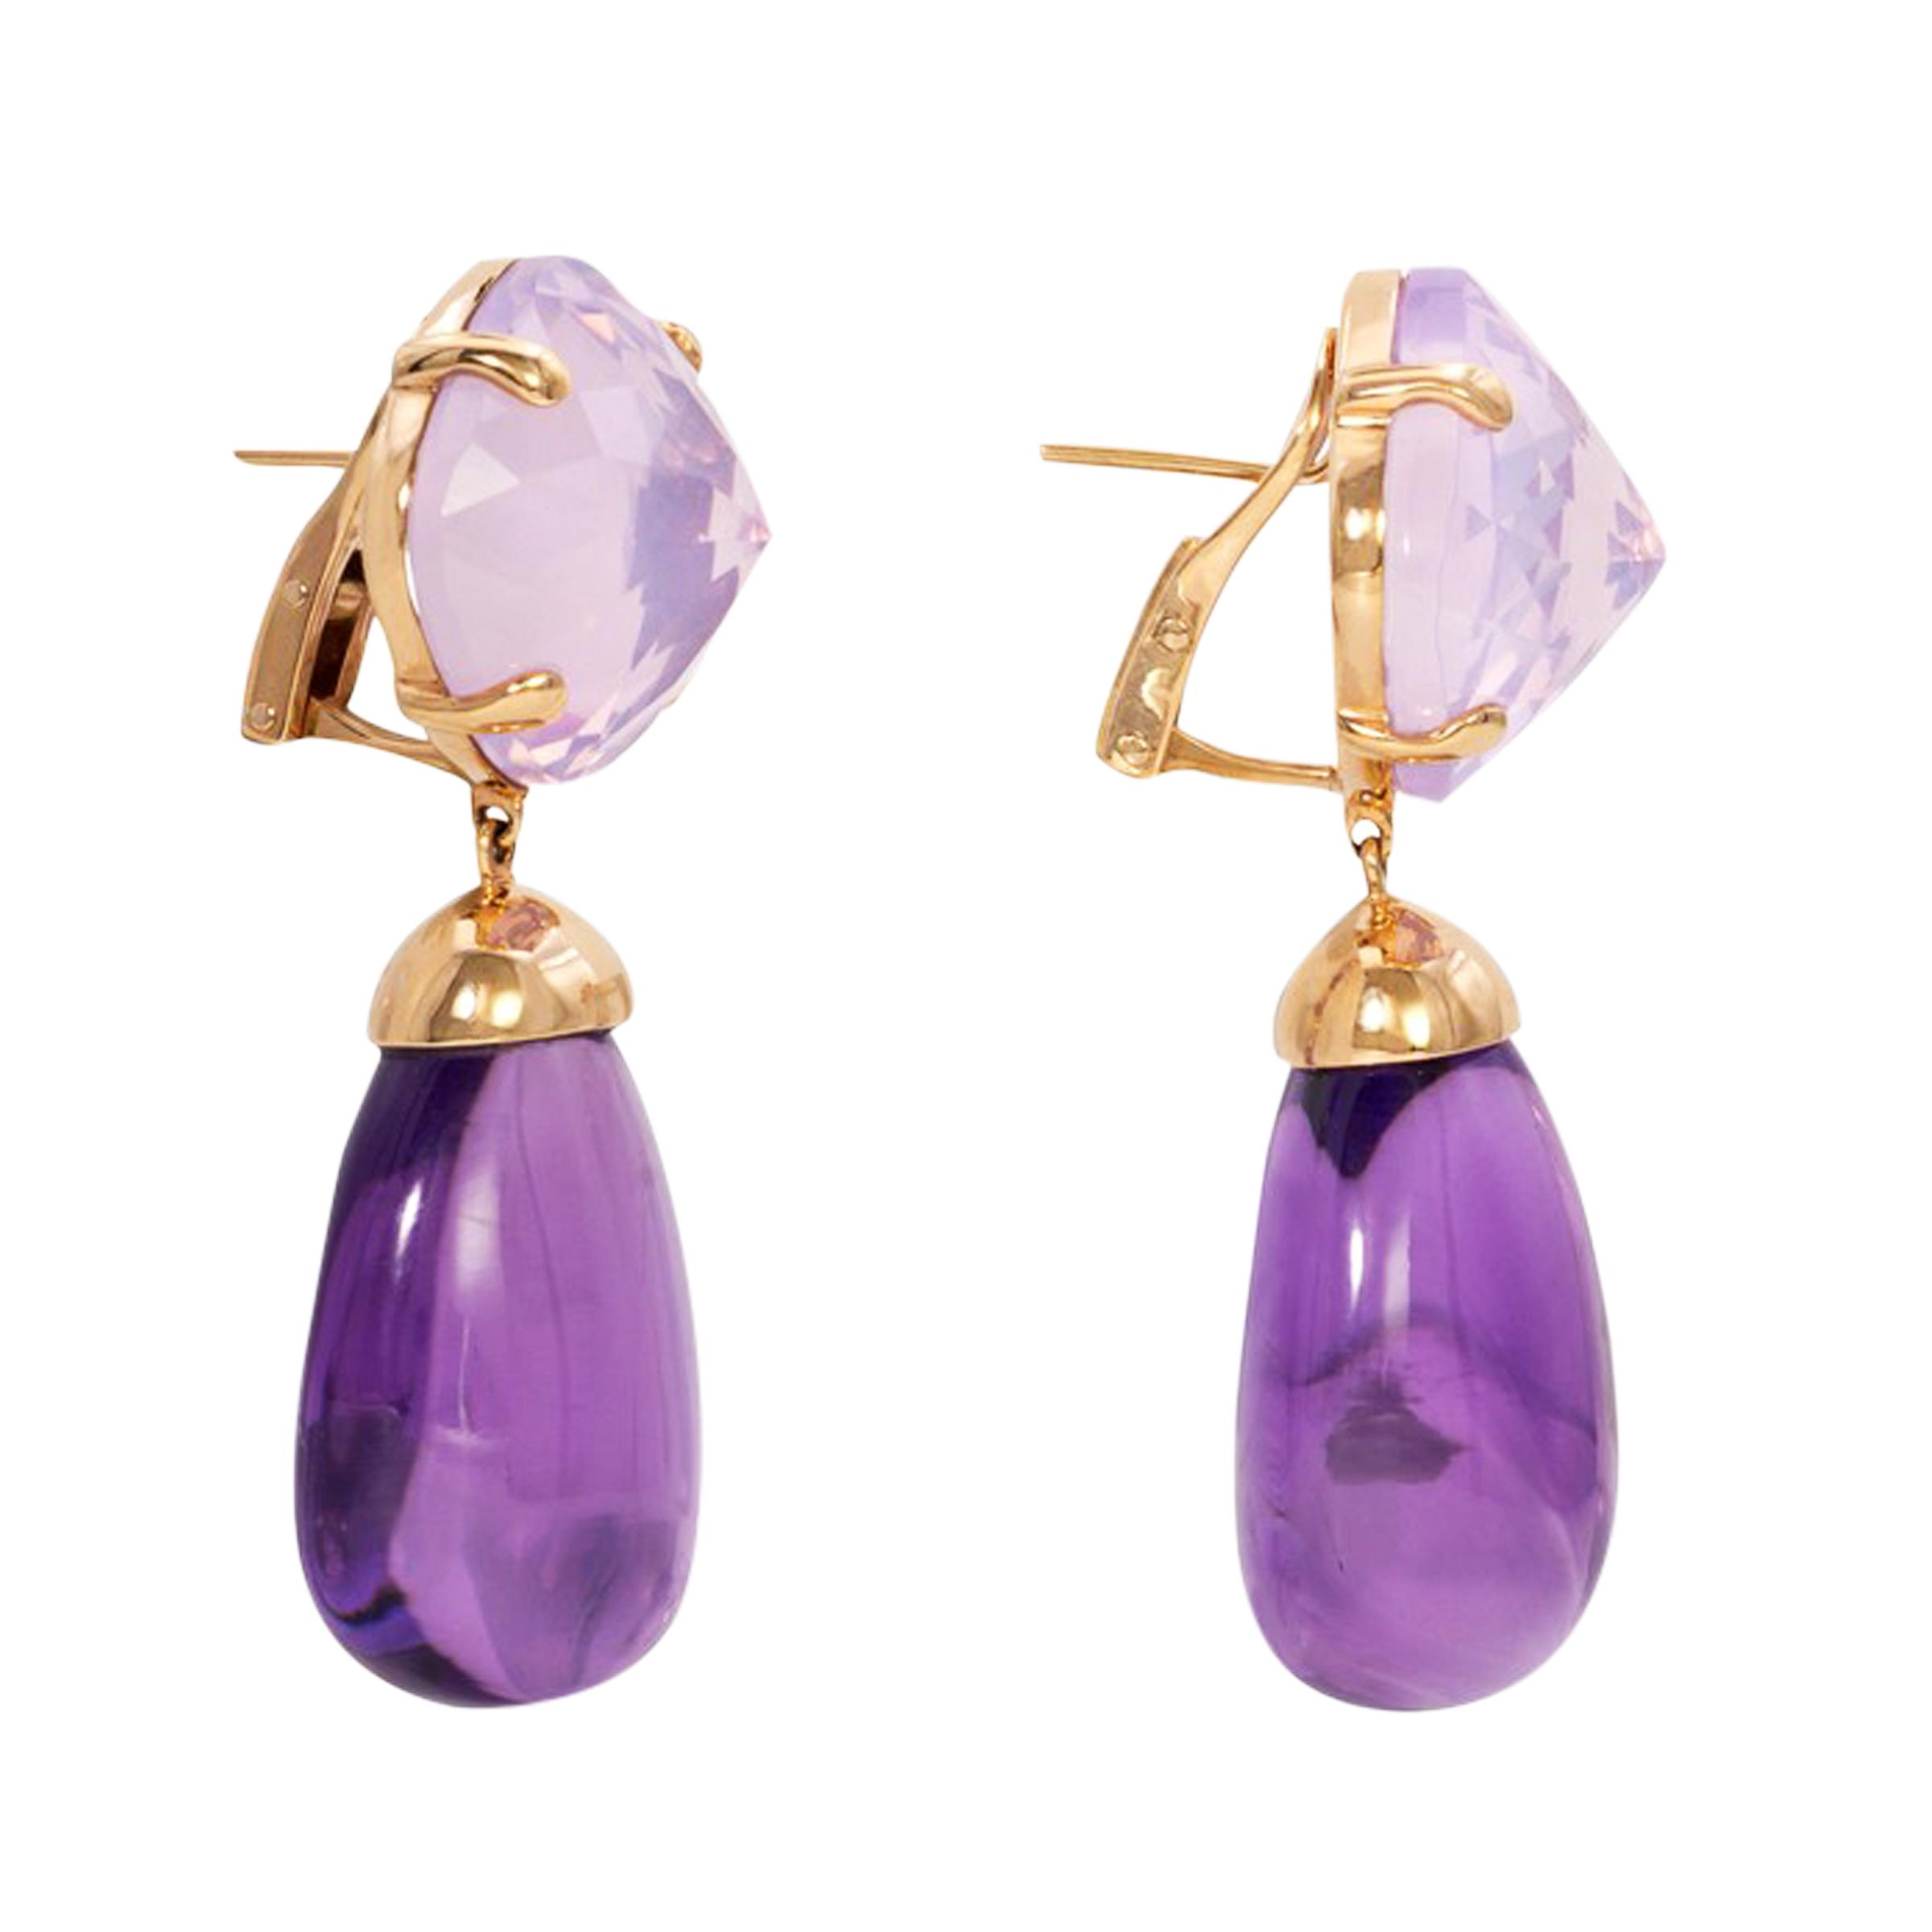 a-pair-of-amethyst-pendant-earclips-d565